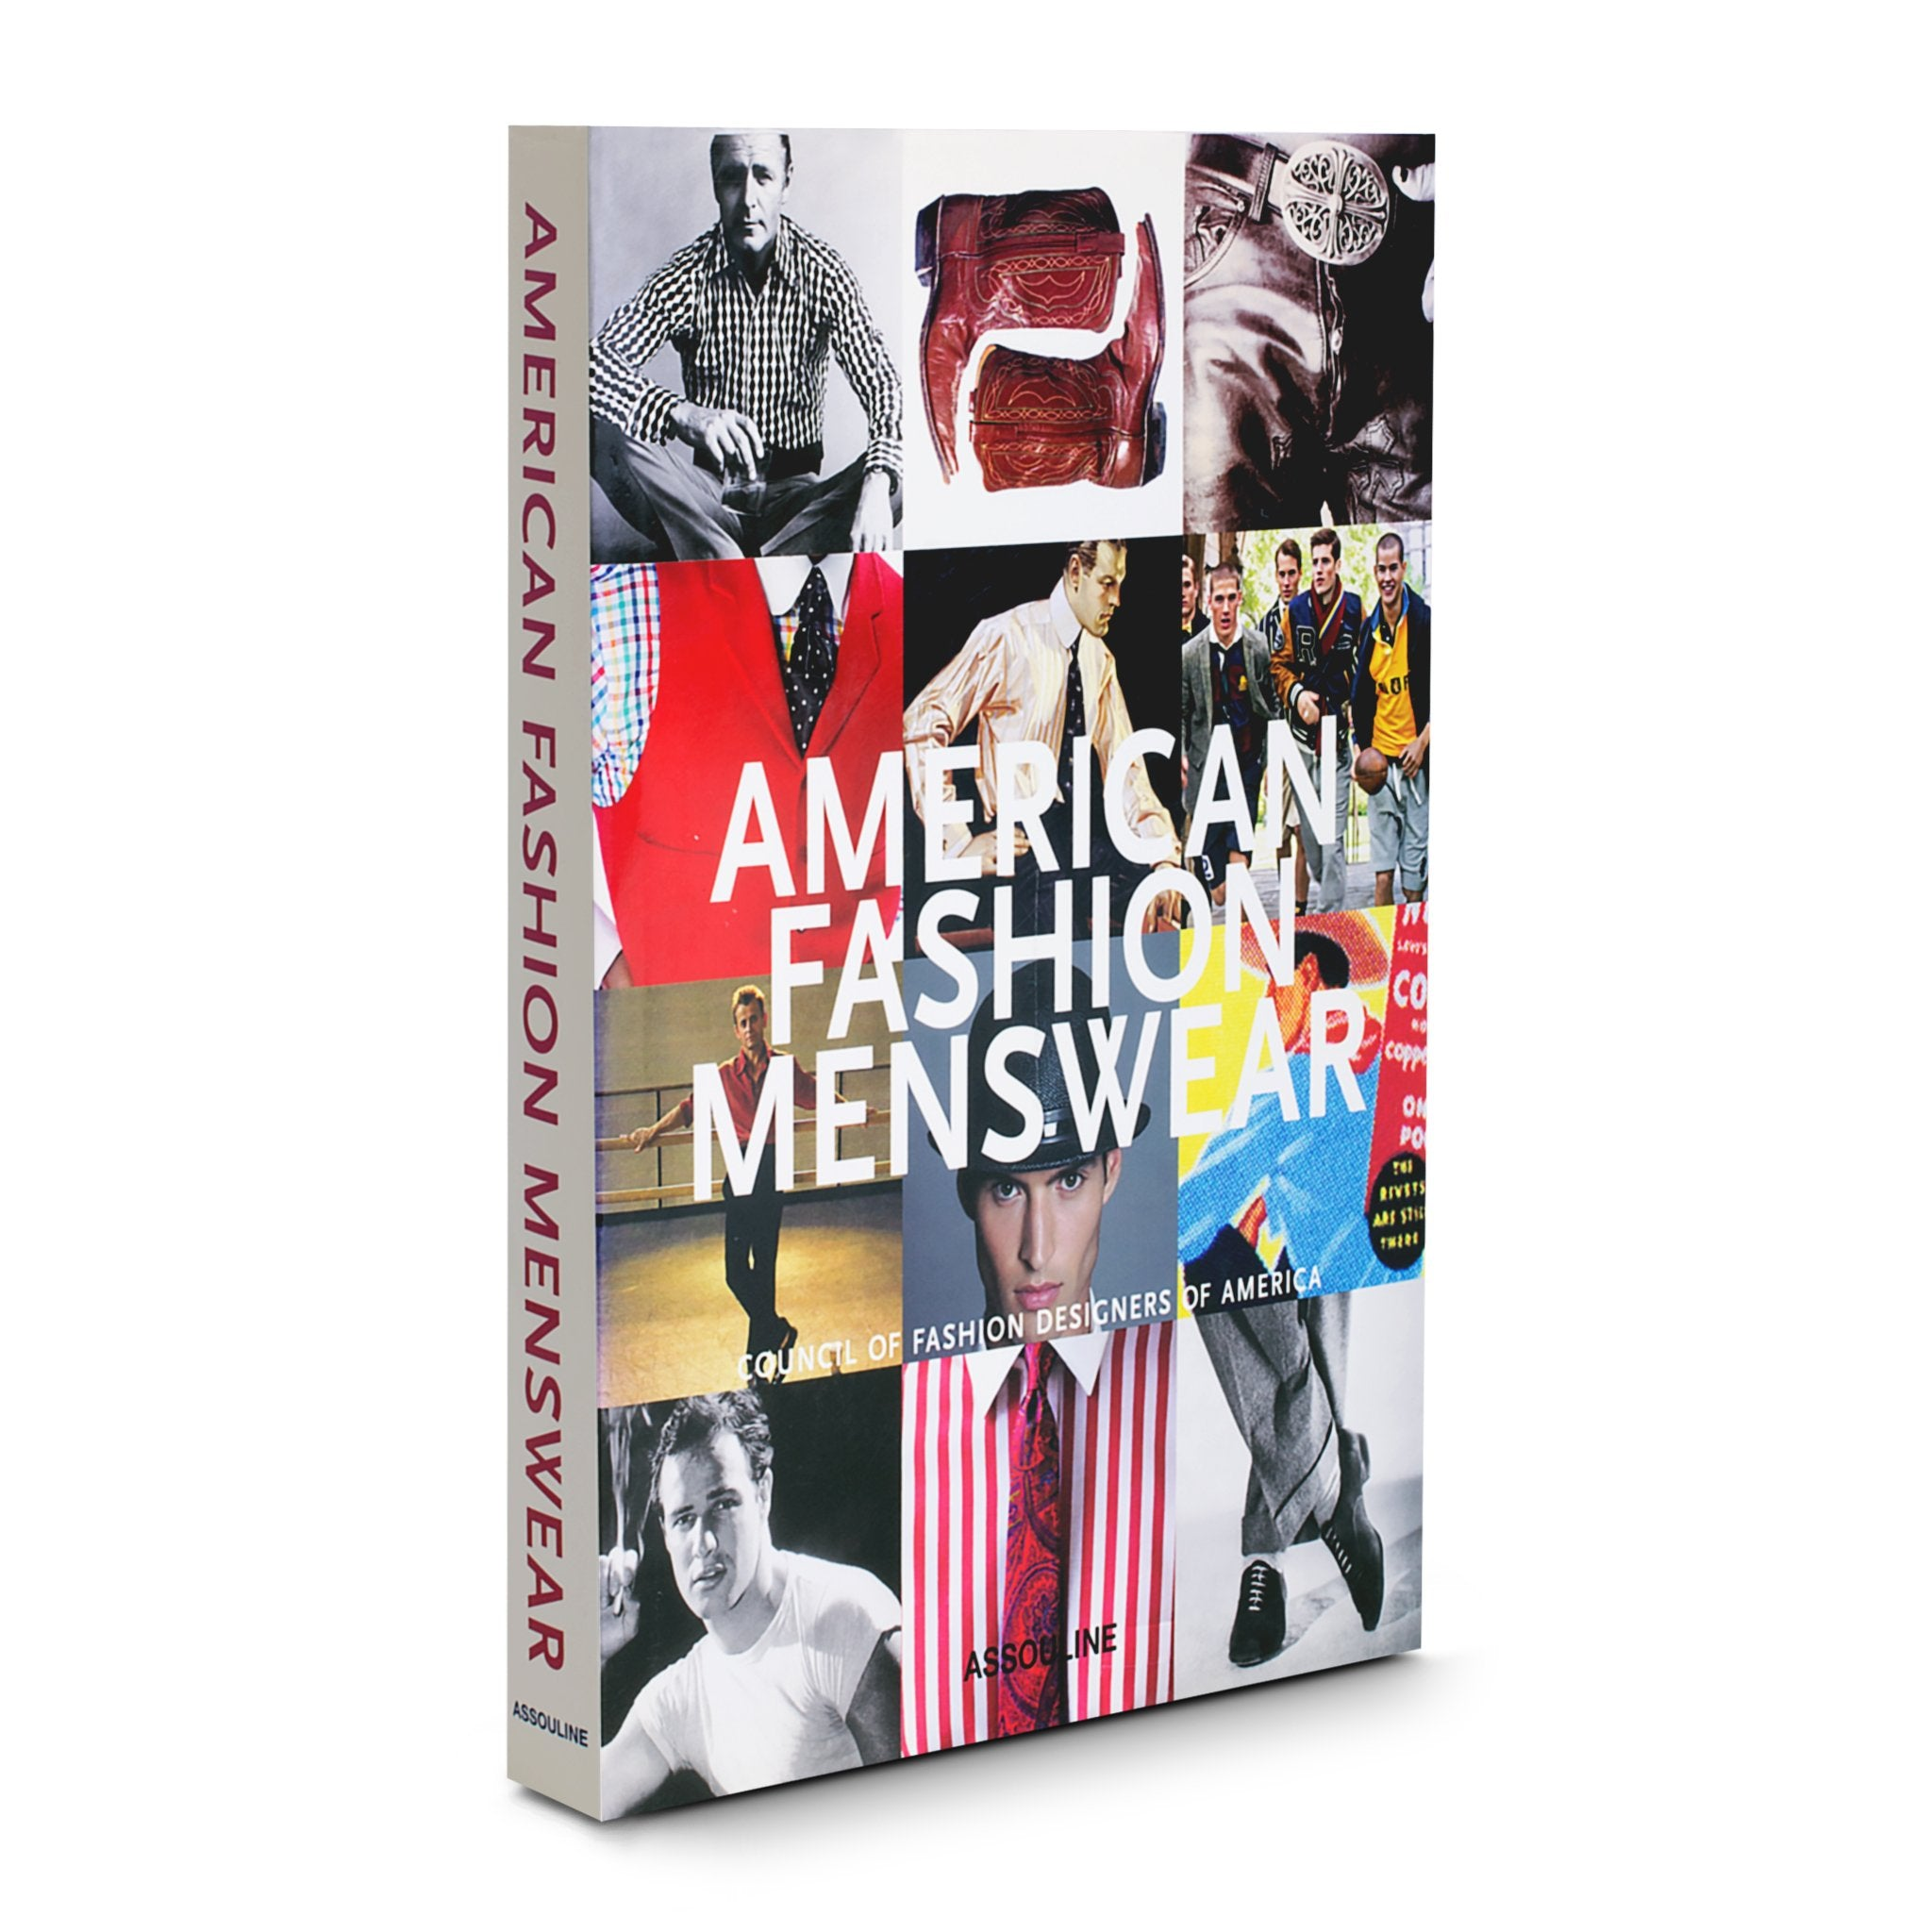 American Fashion Menswear - Assouline